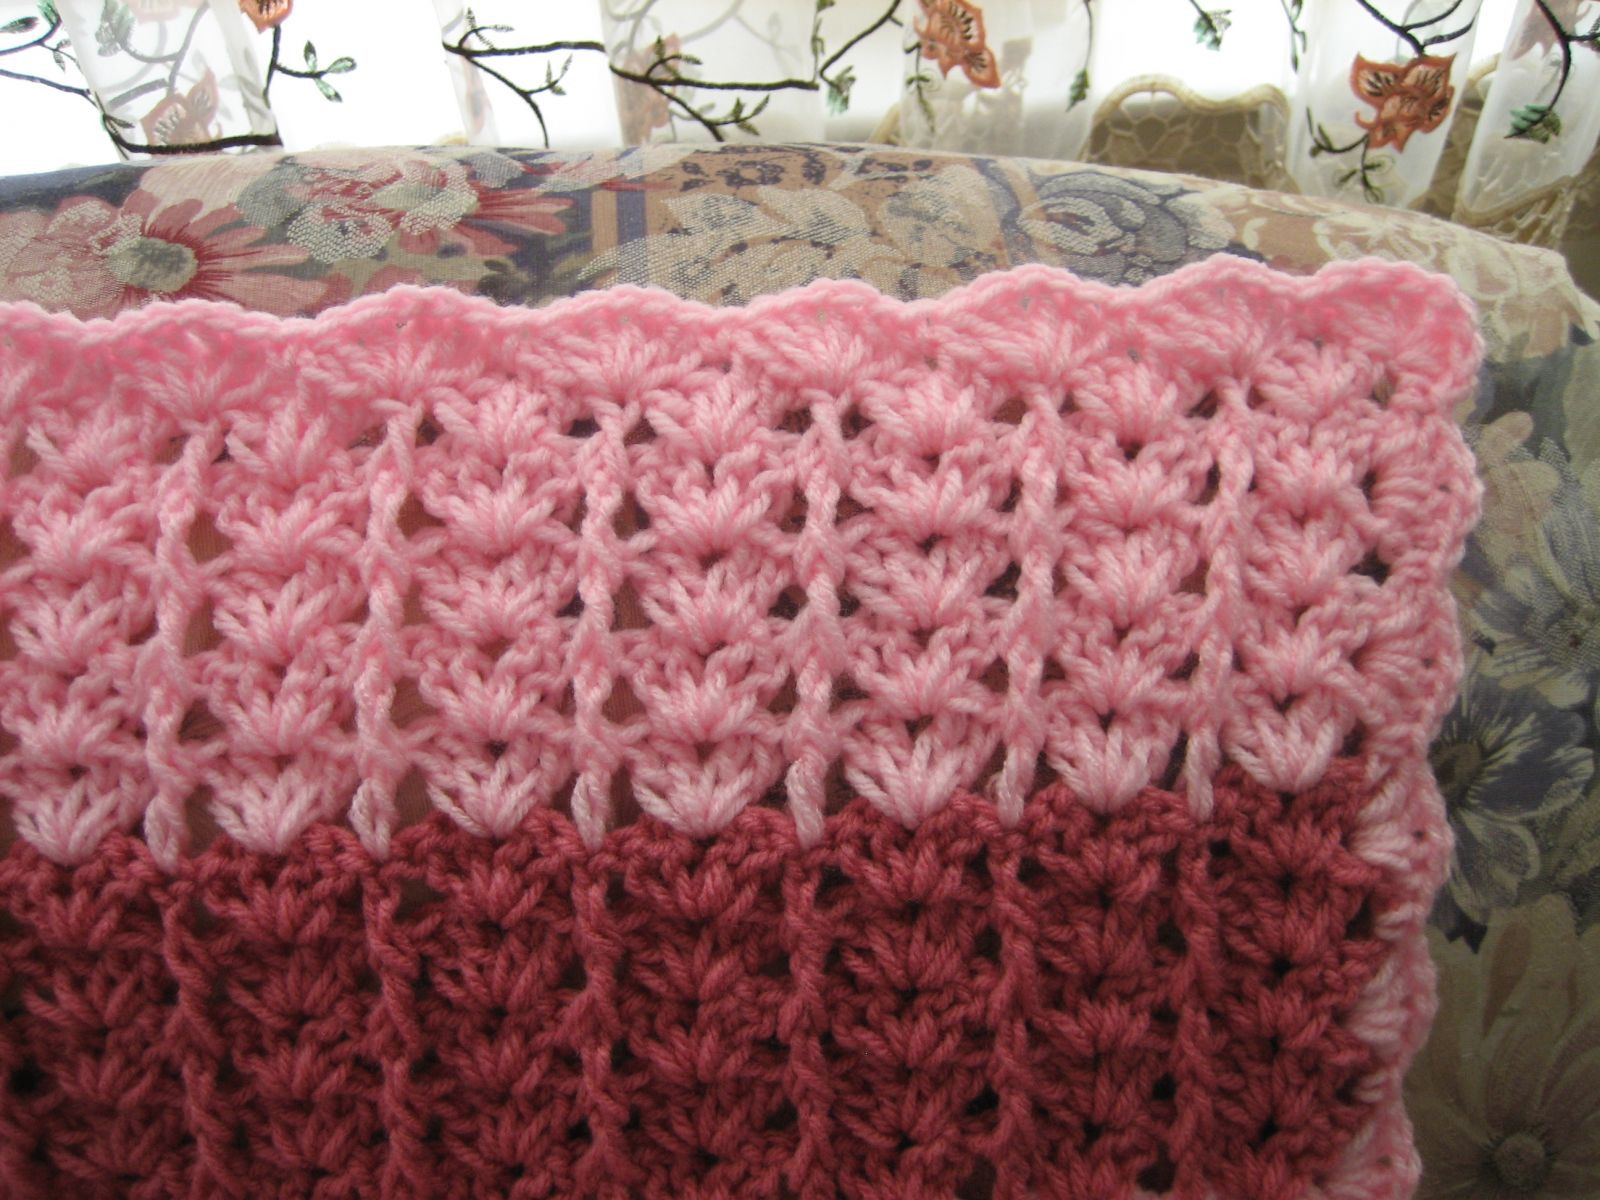 Elegant Lacy Shades Of Pink Shells Afghan Crochet Throw Blanket Patterns Free Of Incredible 43 Ideas Crochet Throw Blanket Patterns Free